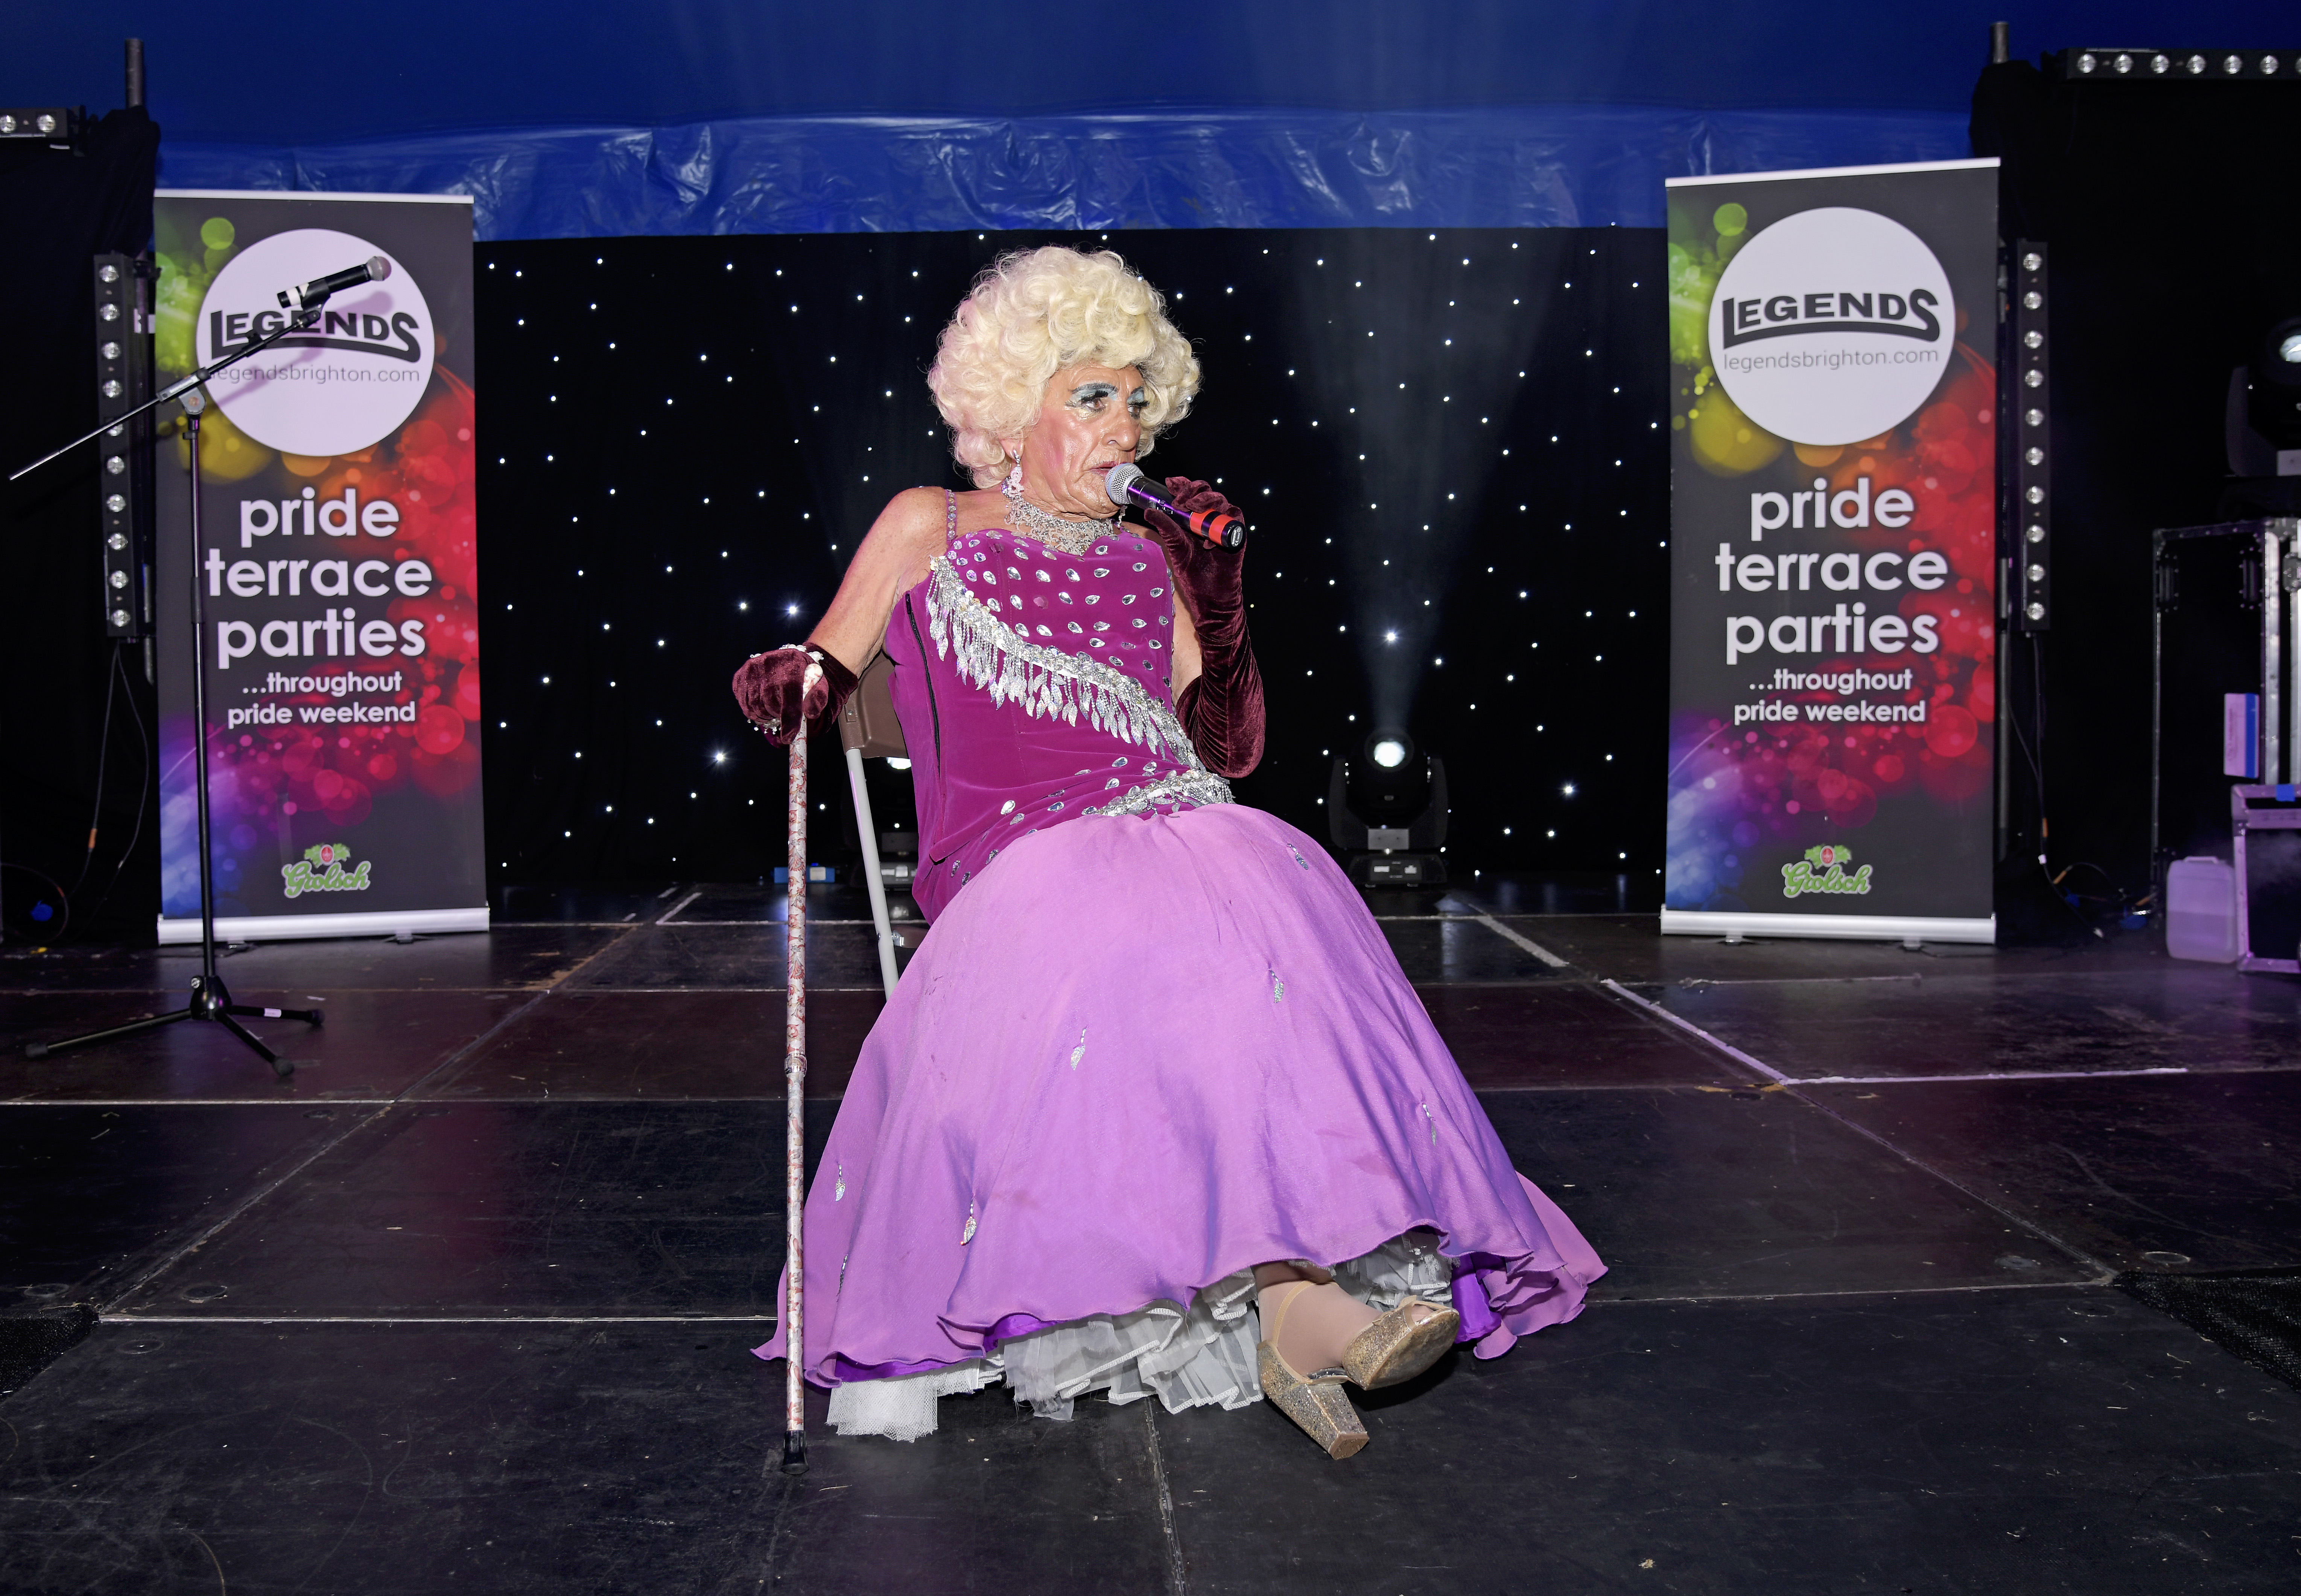 Legends to sponsor Brighton Pride Cabaret Big Top for another year